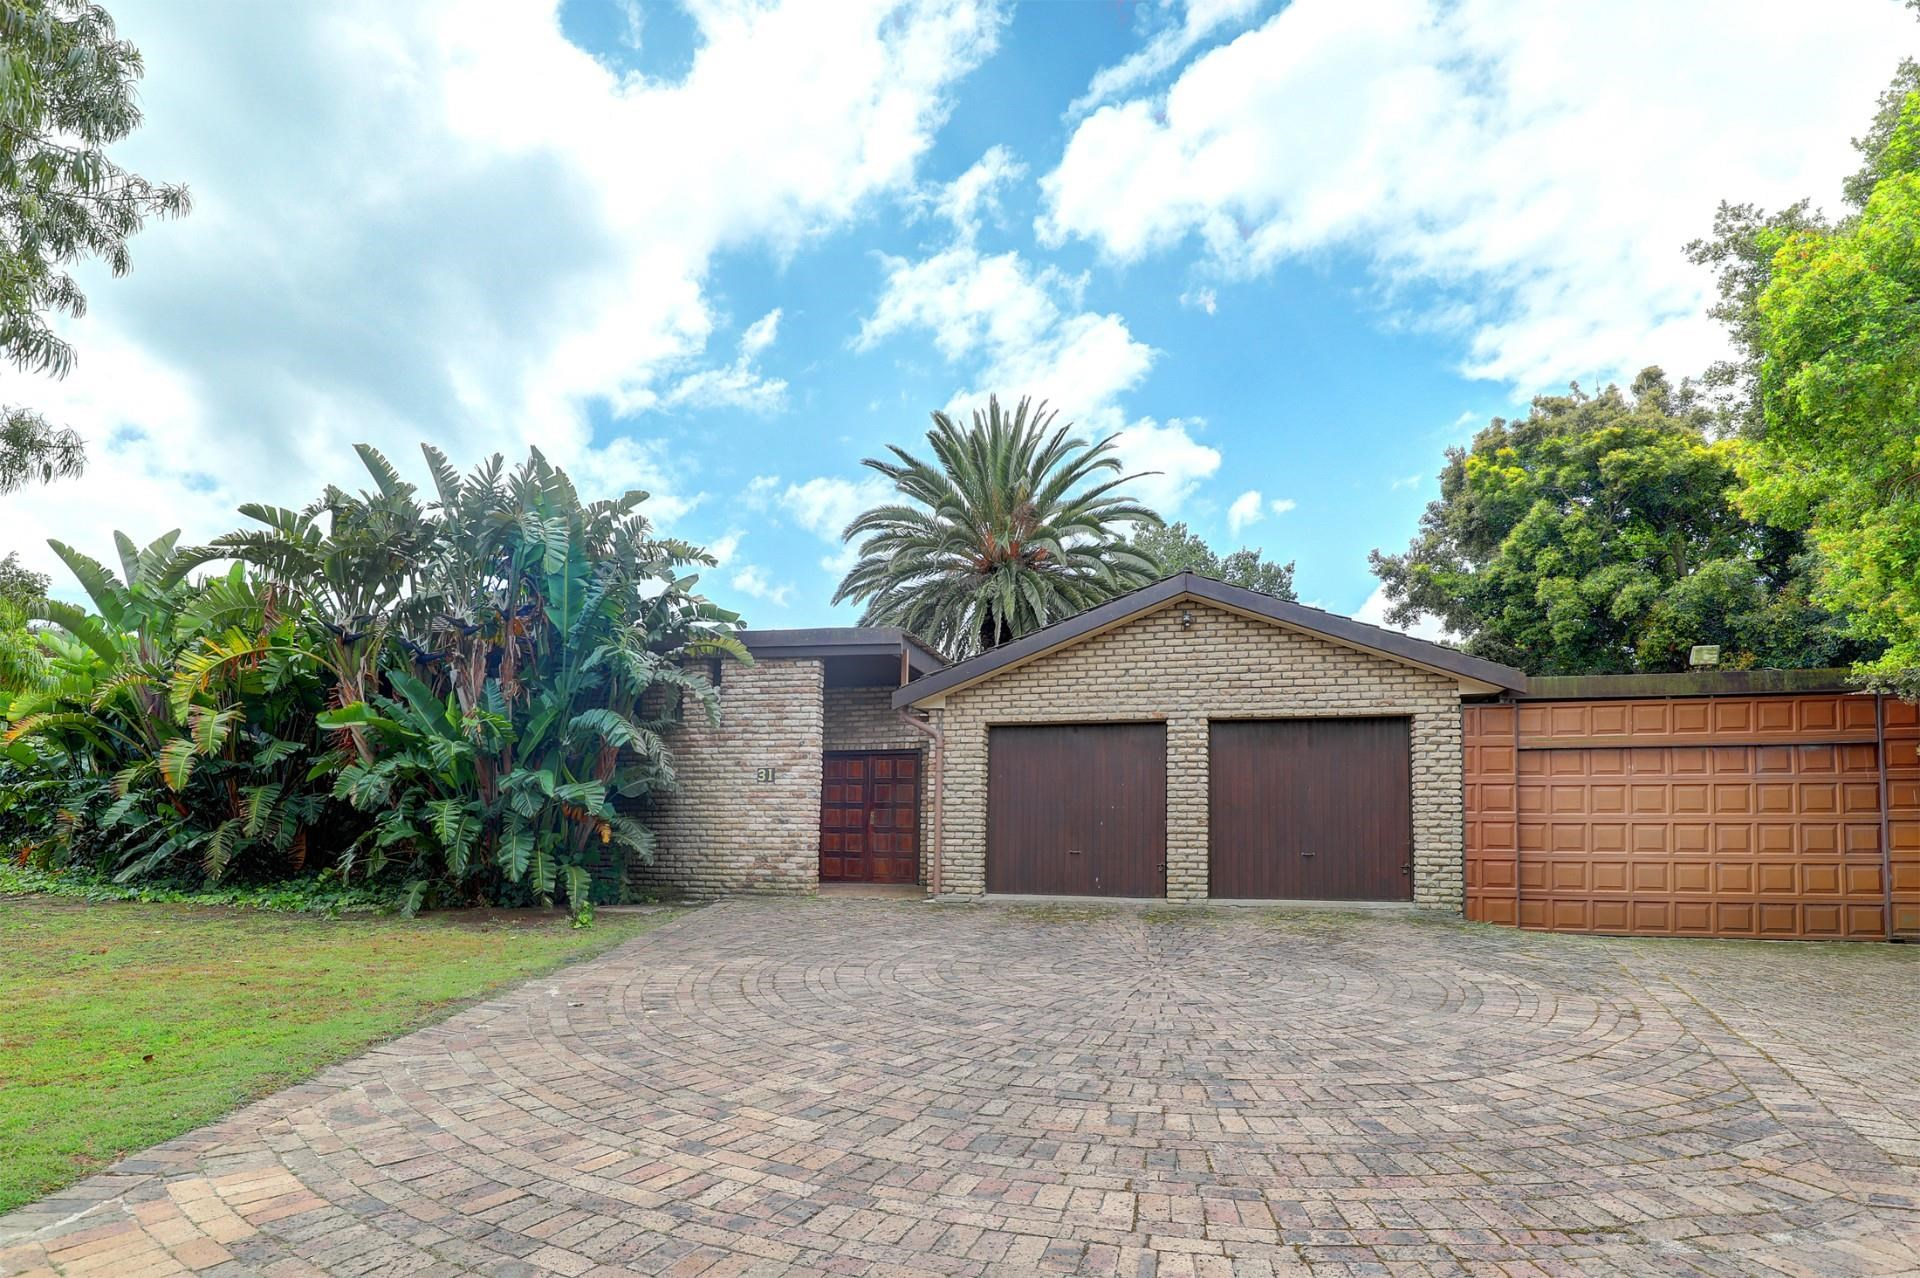 4 Bedroom House for Sale in Valmary Park